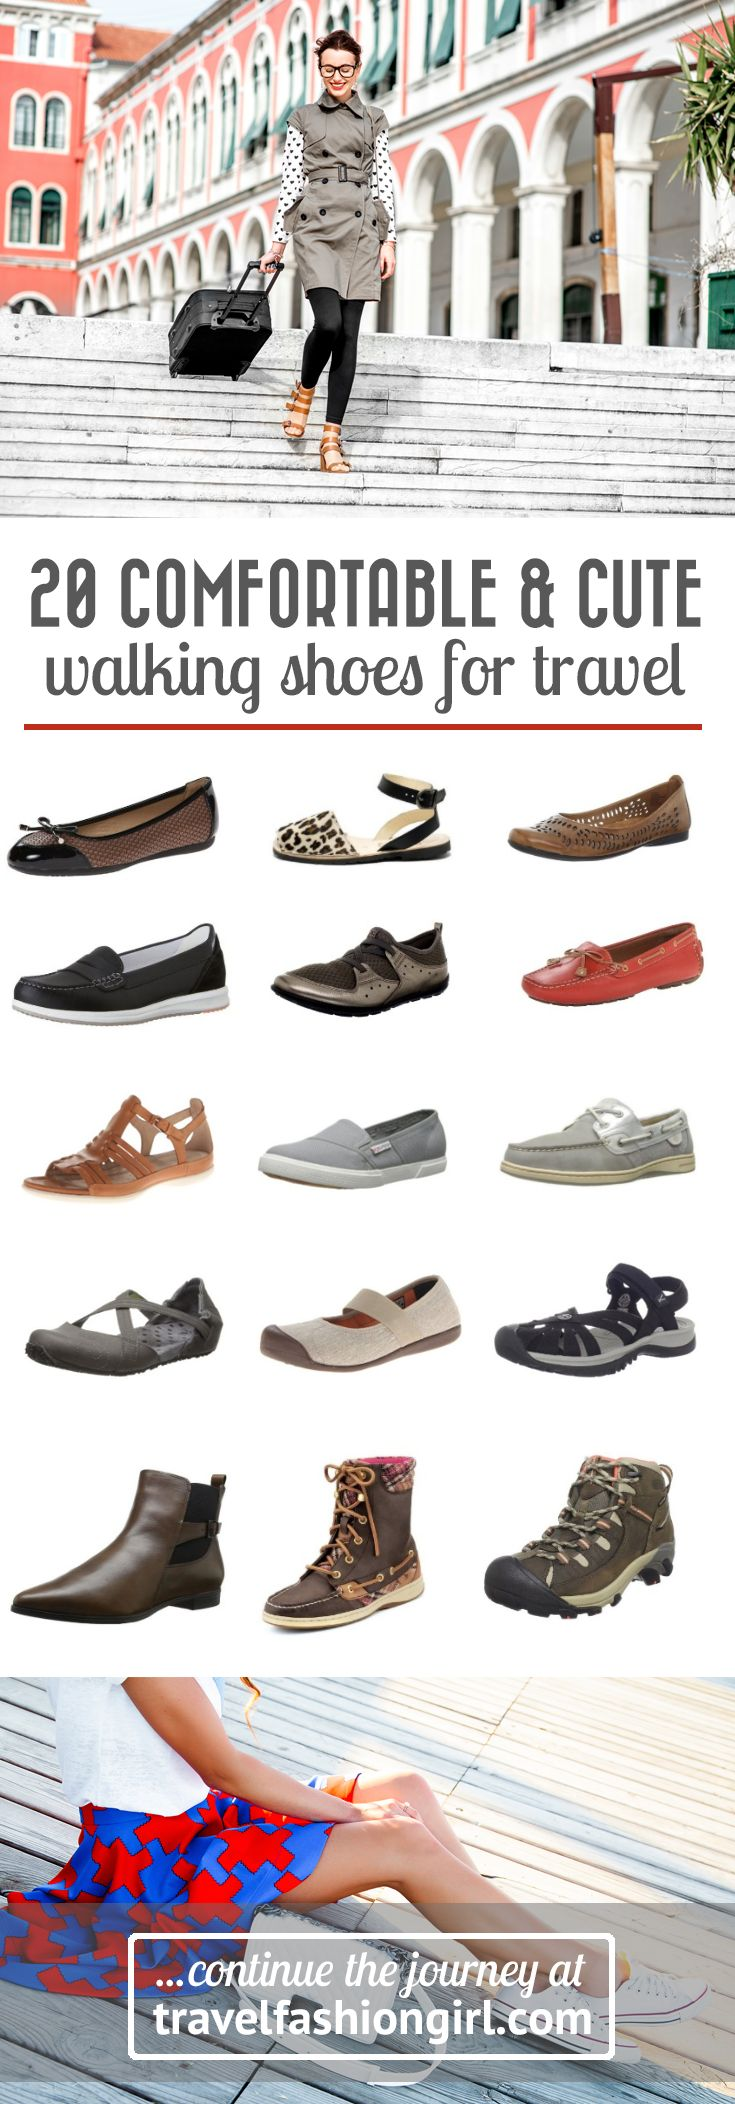 Looking for comfortable and cute walking shoes for travel? Say goodbye to ugly travel shoes! Travelfashiongirl.com